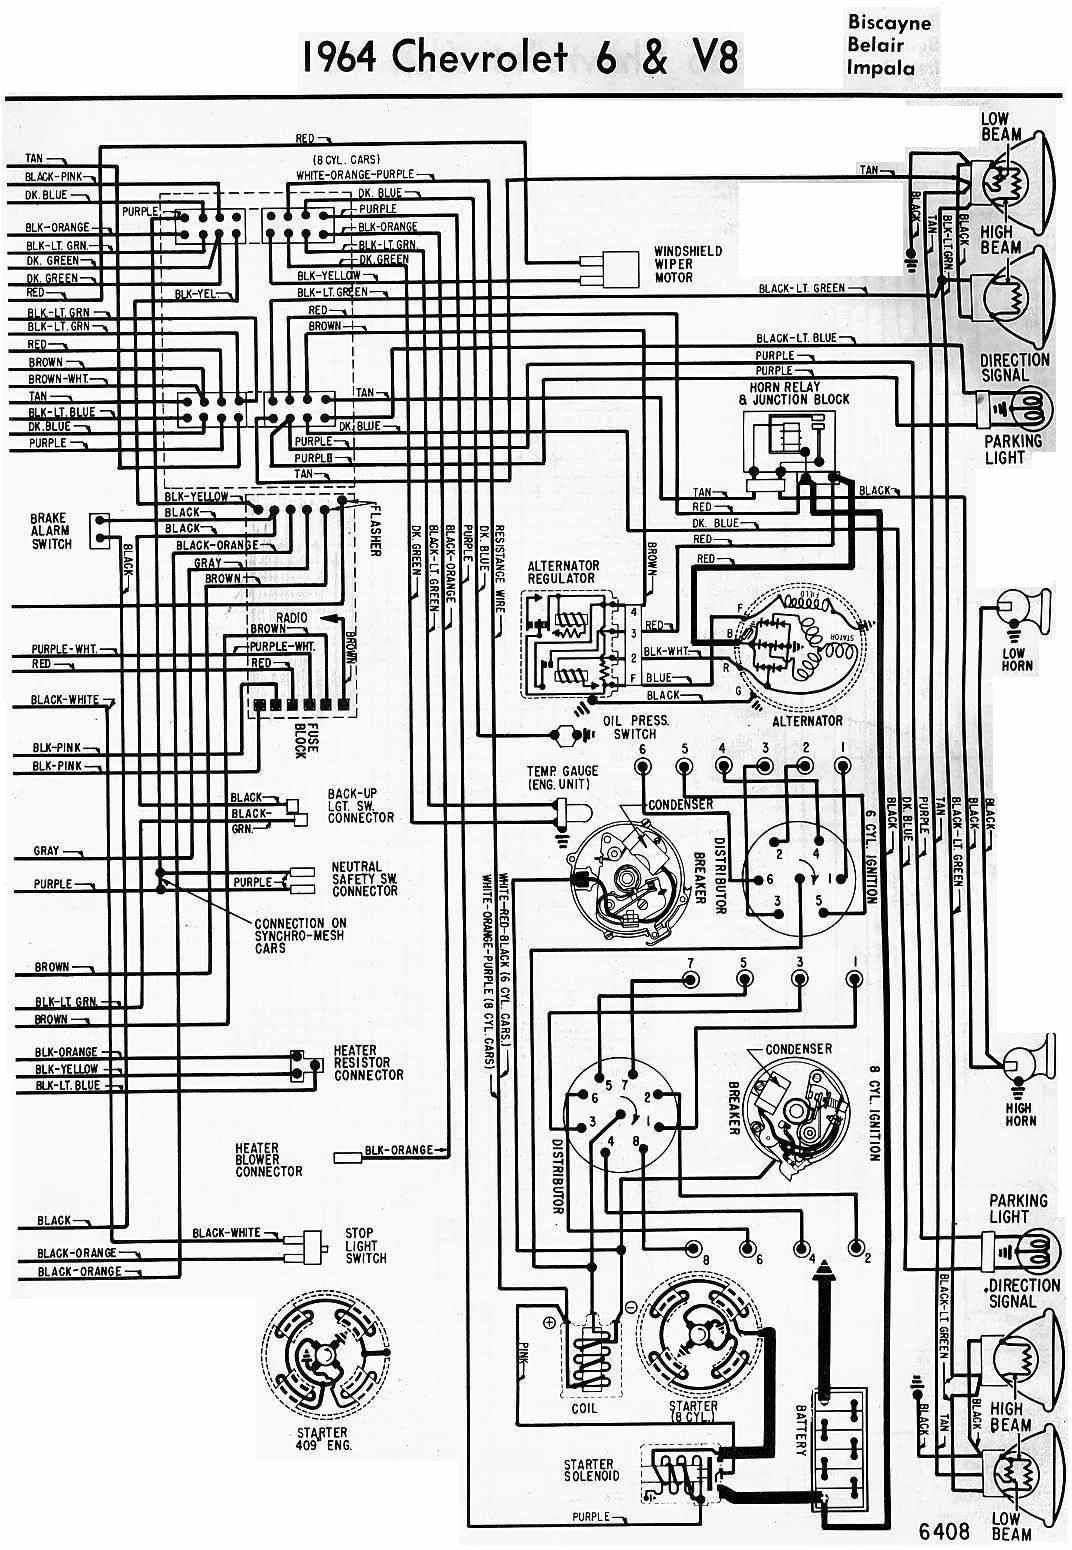 hight resolution of 64 impala wiring diagram wiring diagrams 64 impala headlight wiring diagram